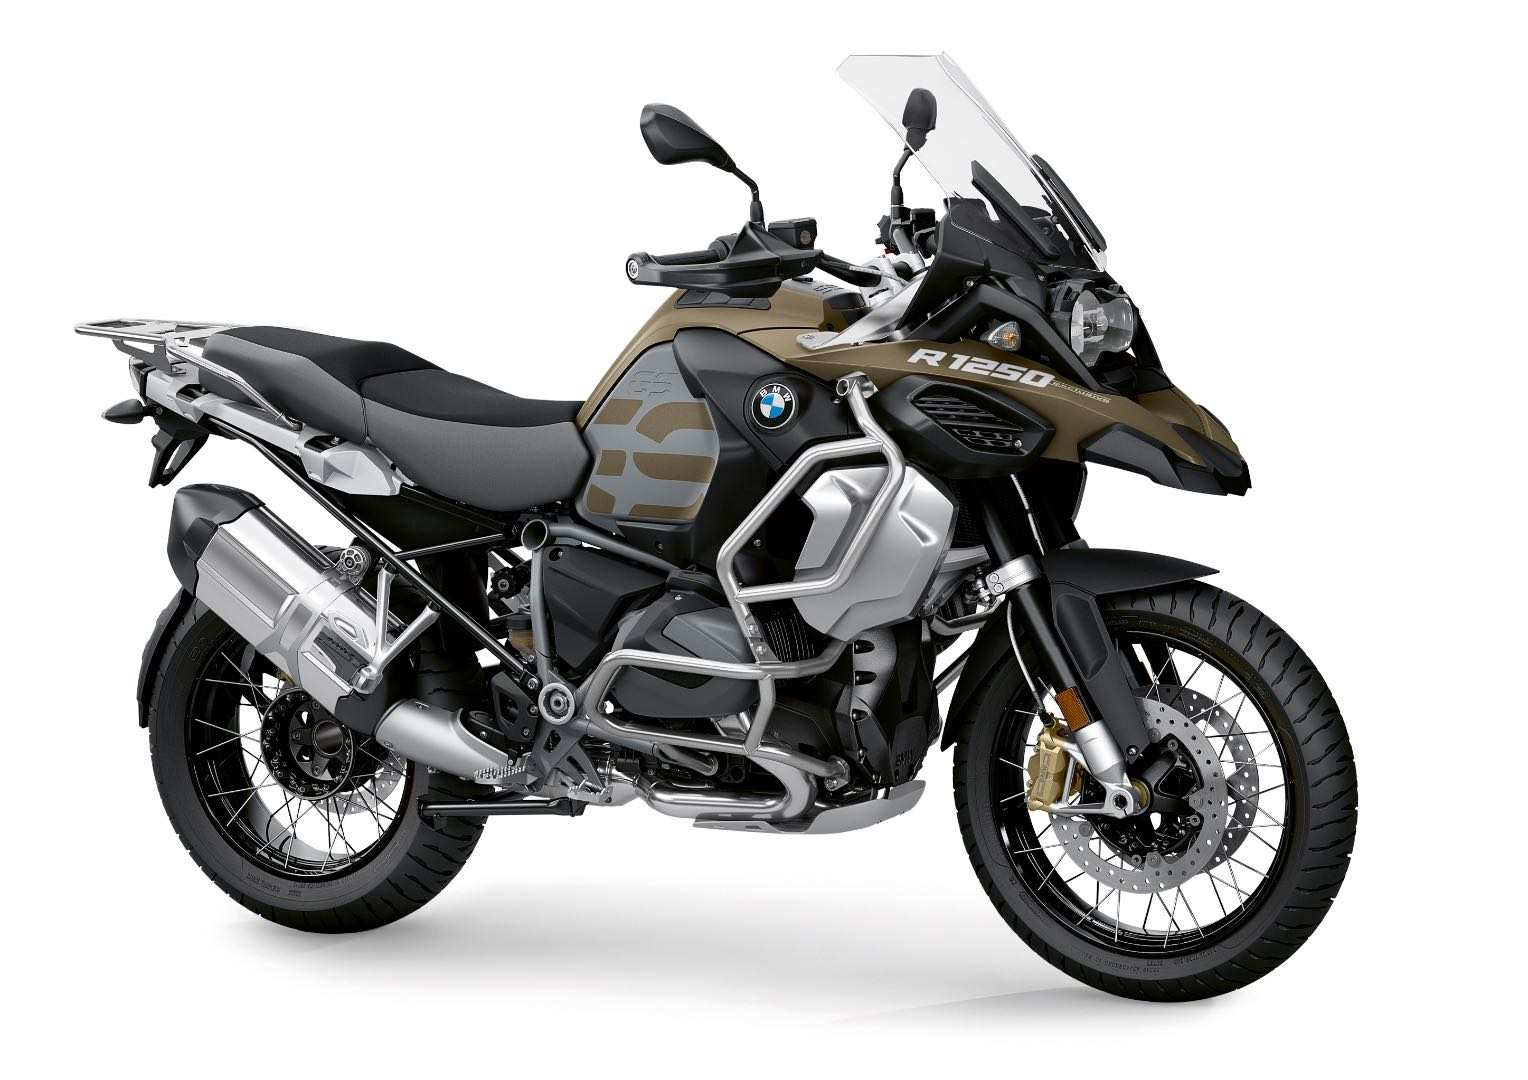 19 Concept of Bmw Gs Adventure 2020 Research New by Bmw Gs Adventure 2020